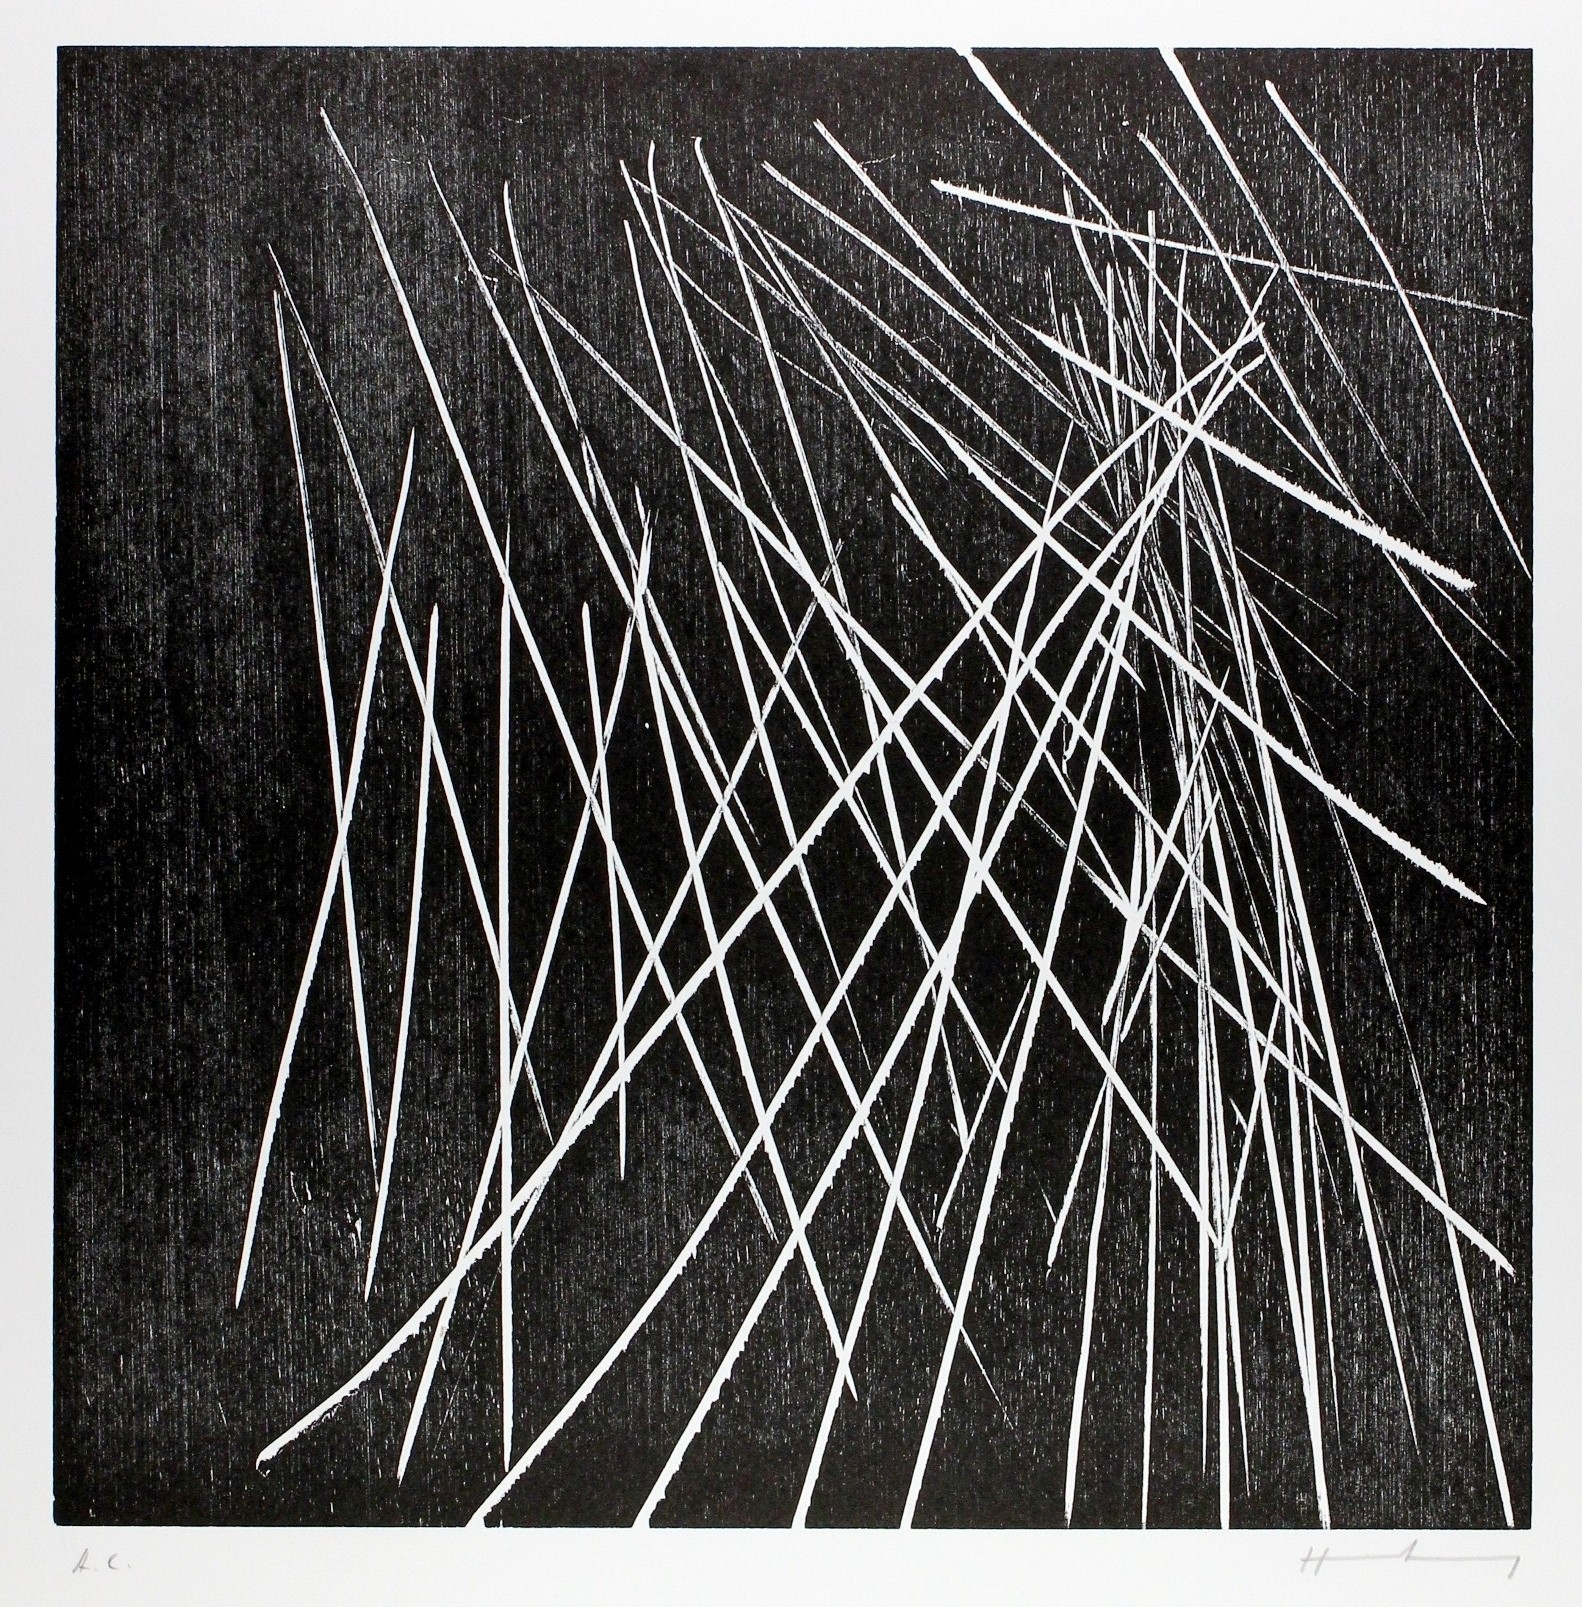 H-8-1973 by Hans Hartung